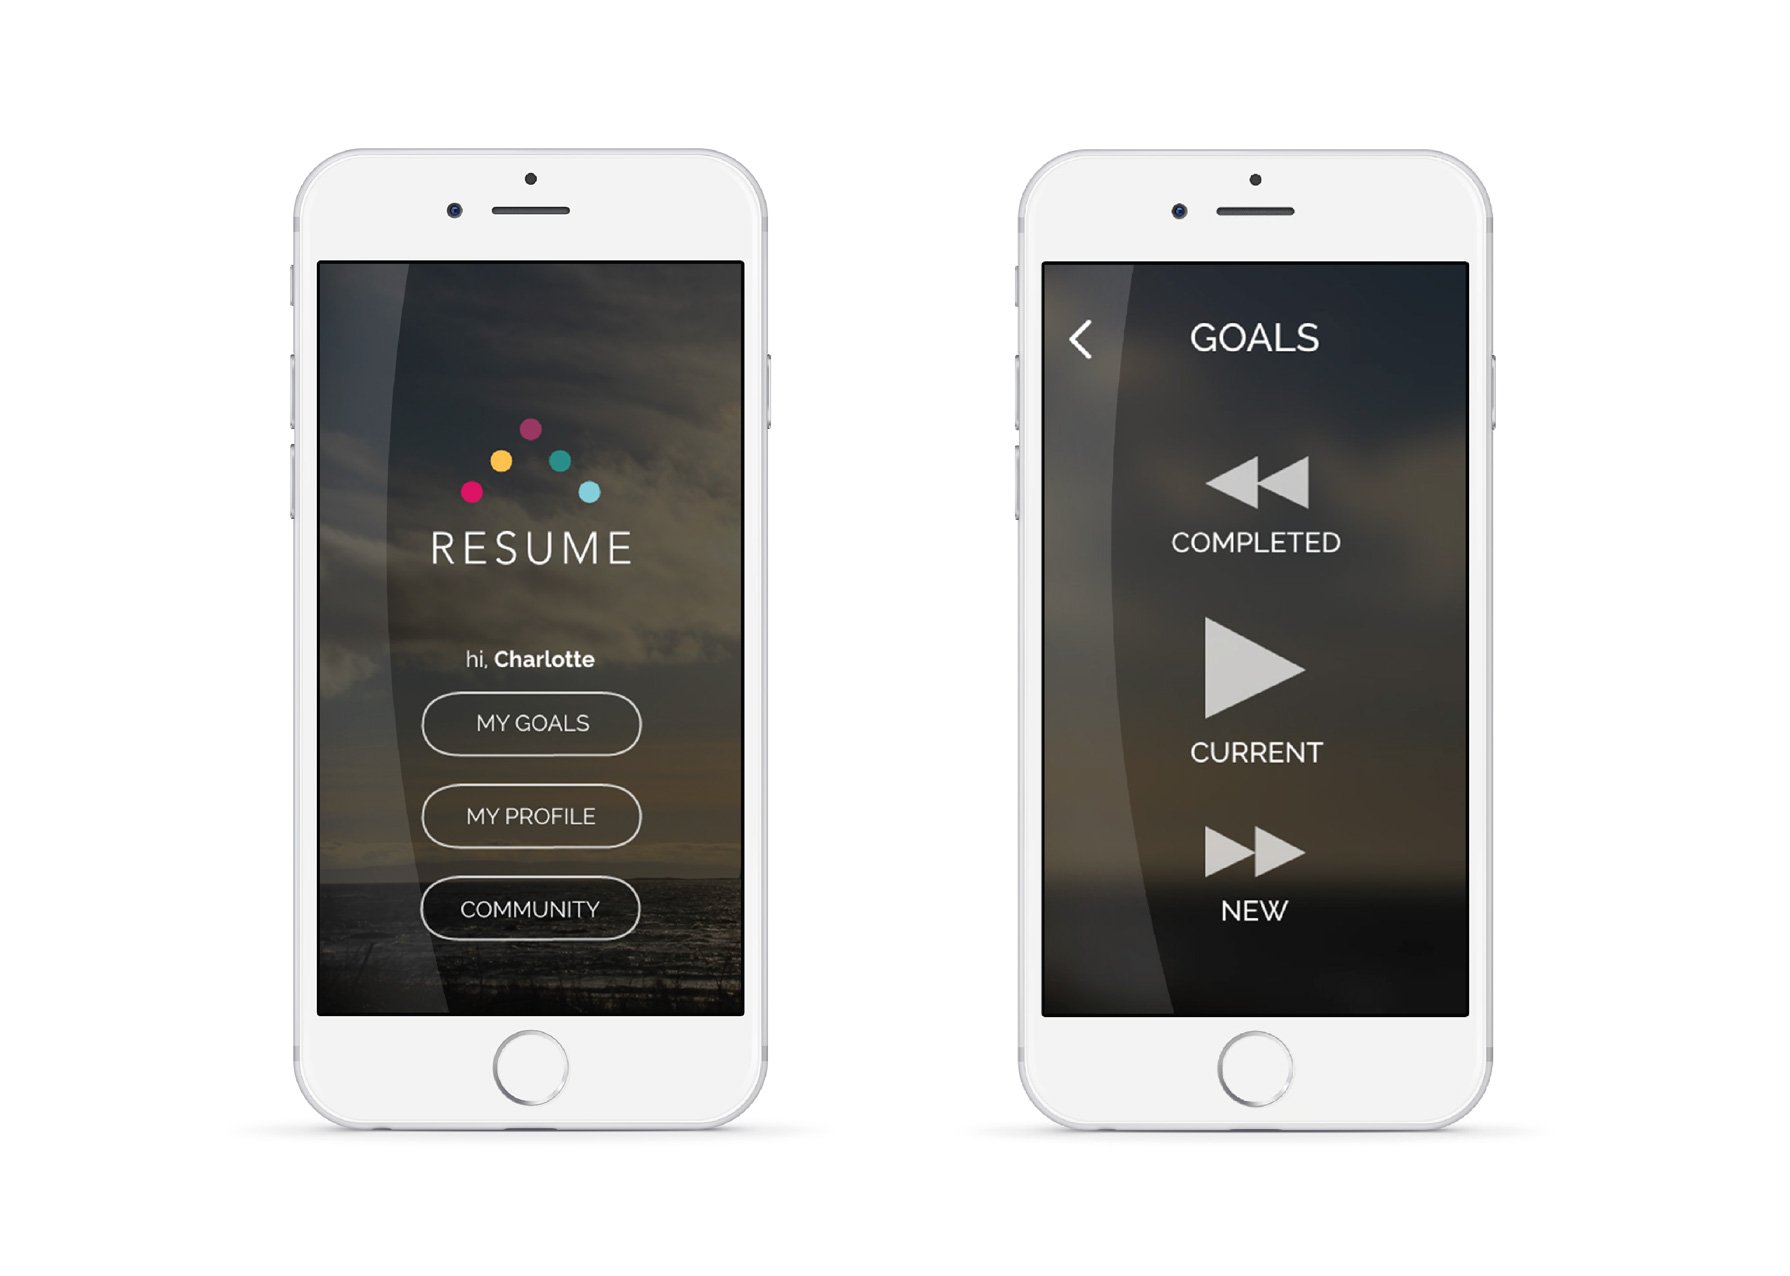 App screens home and goal choice